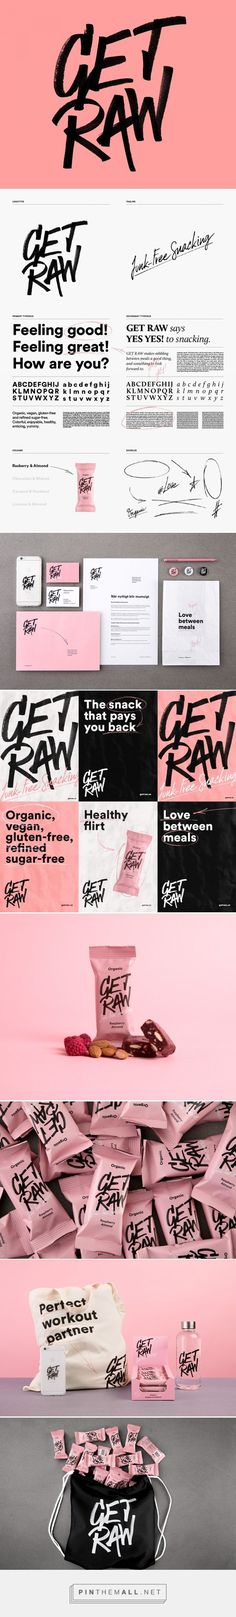 Established in 2013, Get Raw is a brand of health bars in Sweden that are organic, vegan, gluten-free, and without refined sugar. Late last year, the company introduced a new logo and packaging designed by Stockholm, Sweden-based Snask.